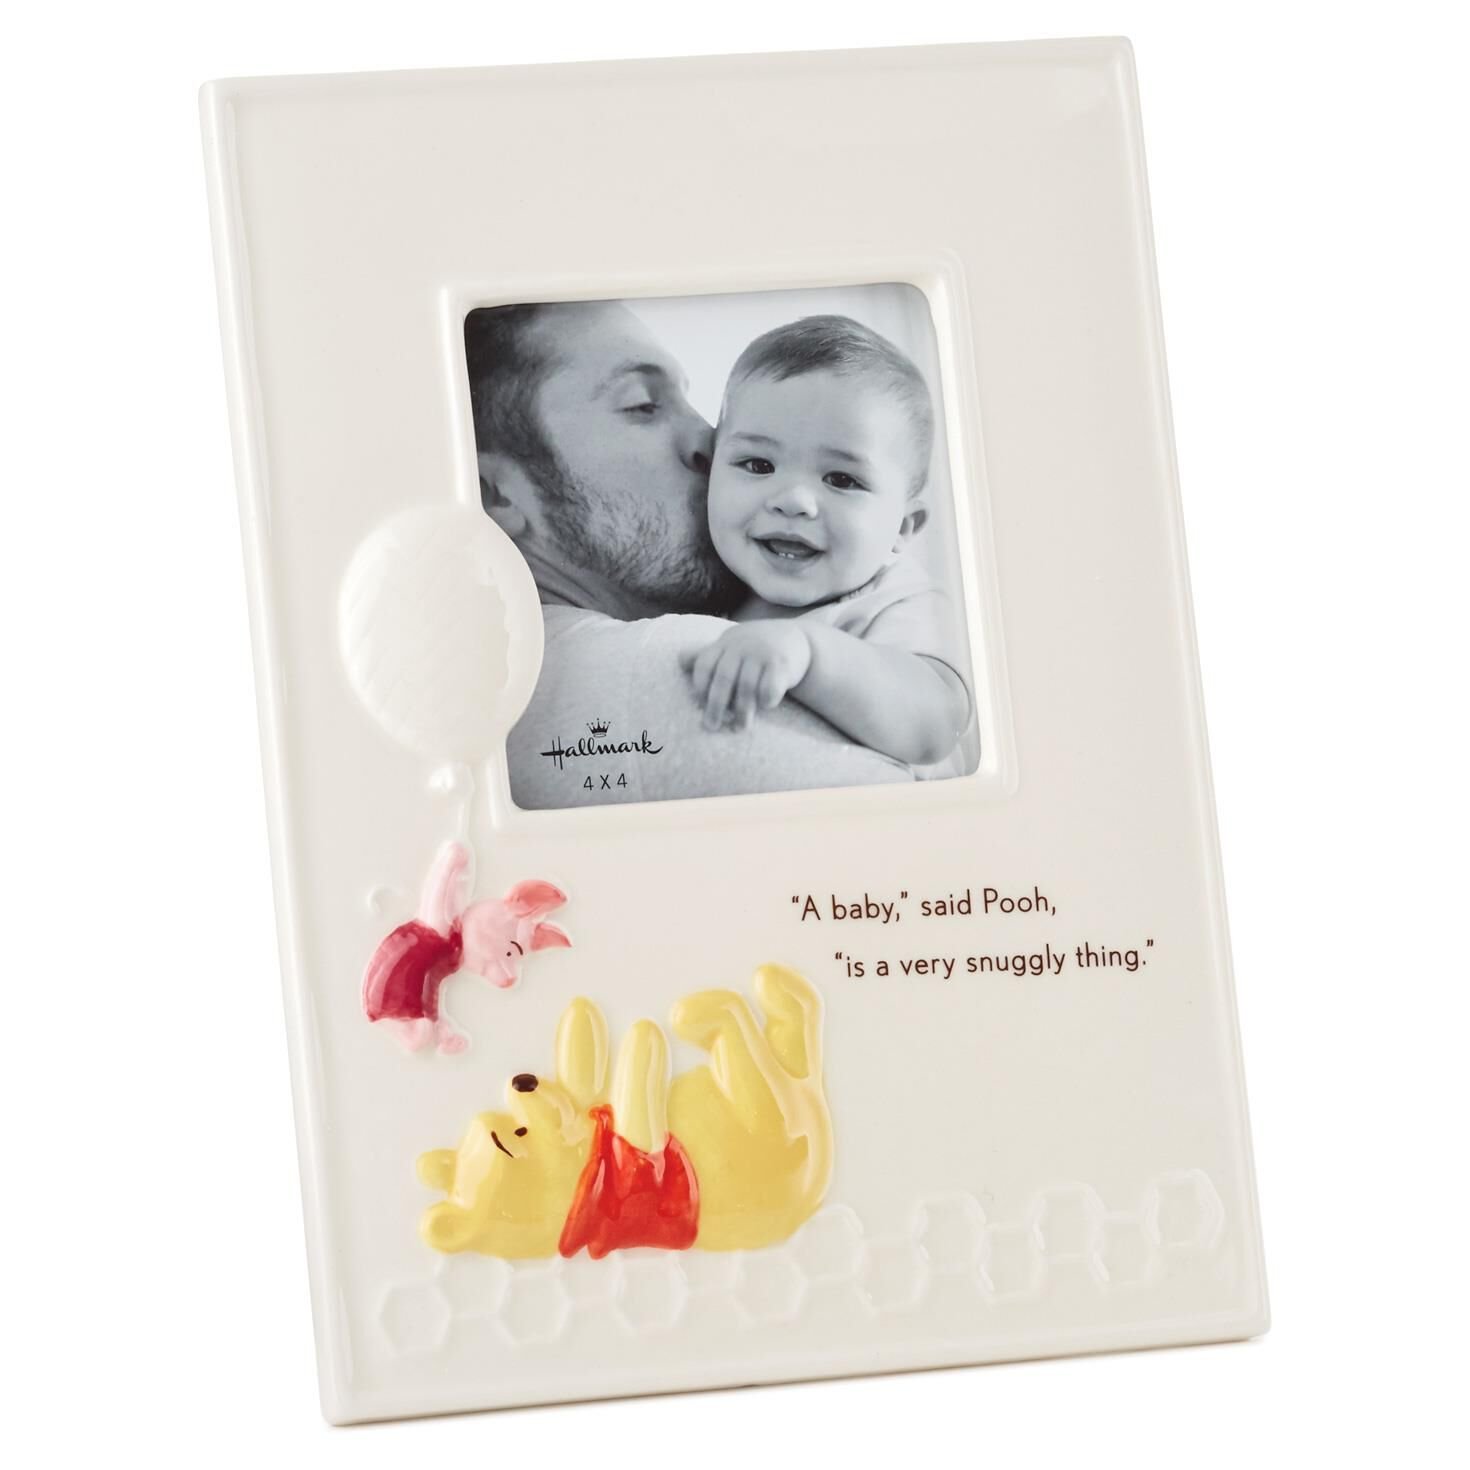 Winnie the pooh baby ceramic square picture frame 4x4 picture winnie the pooh baby ceramic square picture frame 4x4 picture frames hallmark jeuxipadfo Images